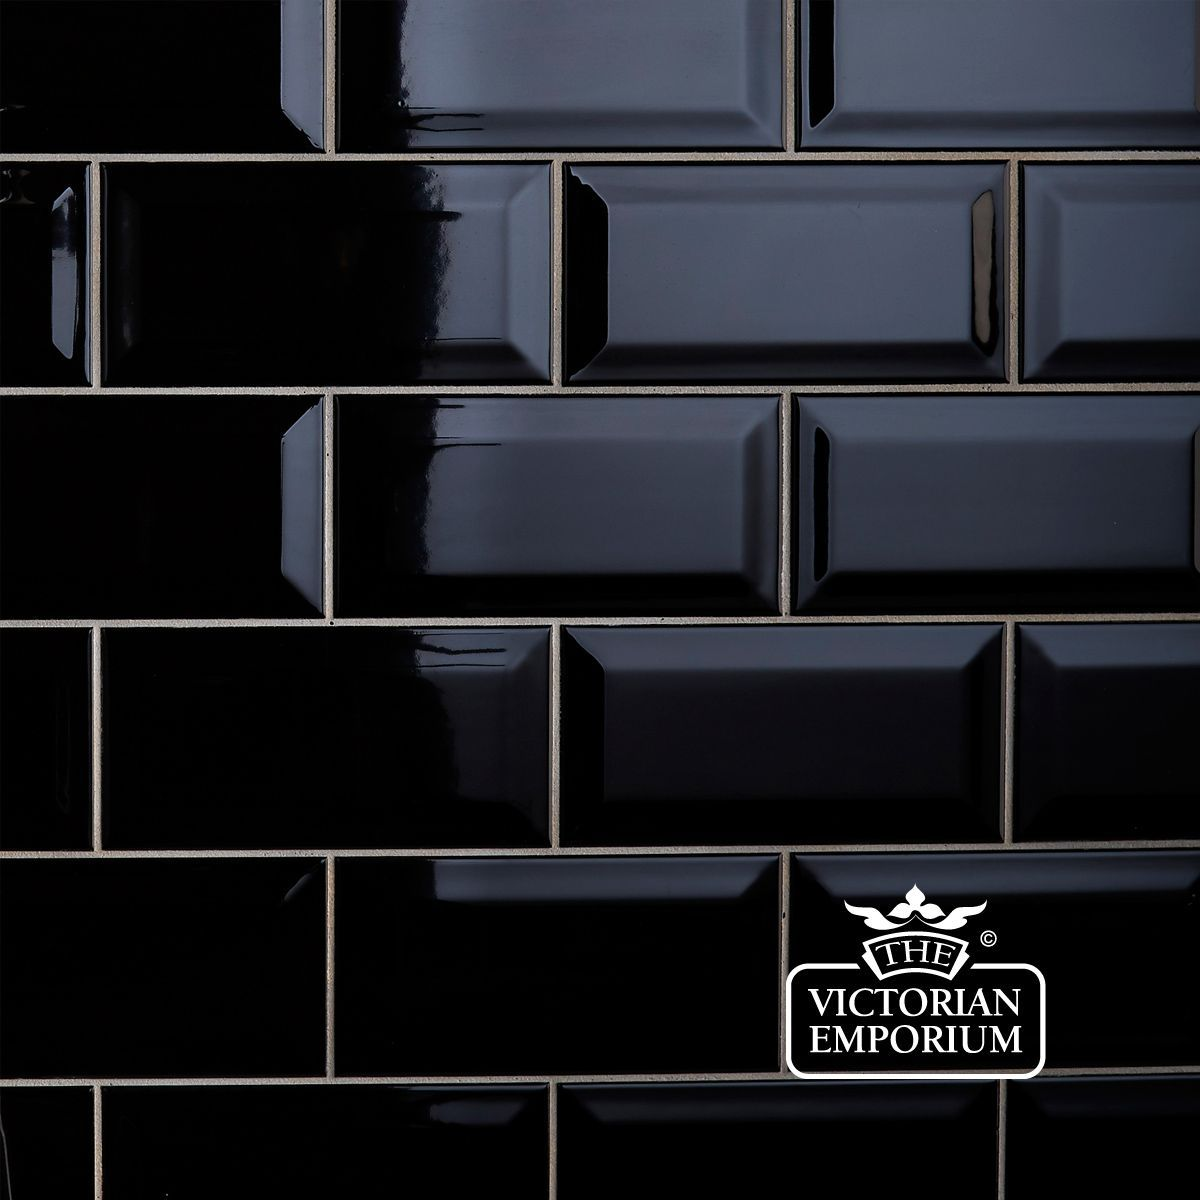 Bevel wall tiles 100x200mm black for my fireplace makeover buy bevel wall tiles black interior ceramic wall tiles bevel wall tiles perfect for victorian kitchens and bathrooms dailygadgetfo Gallery